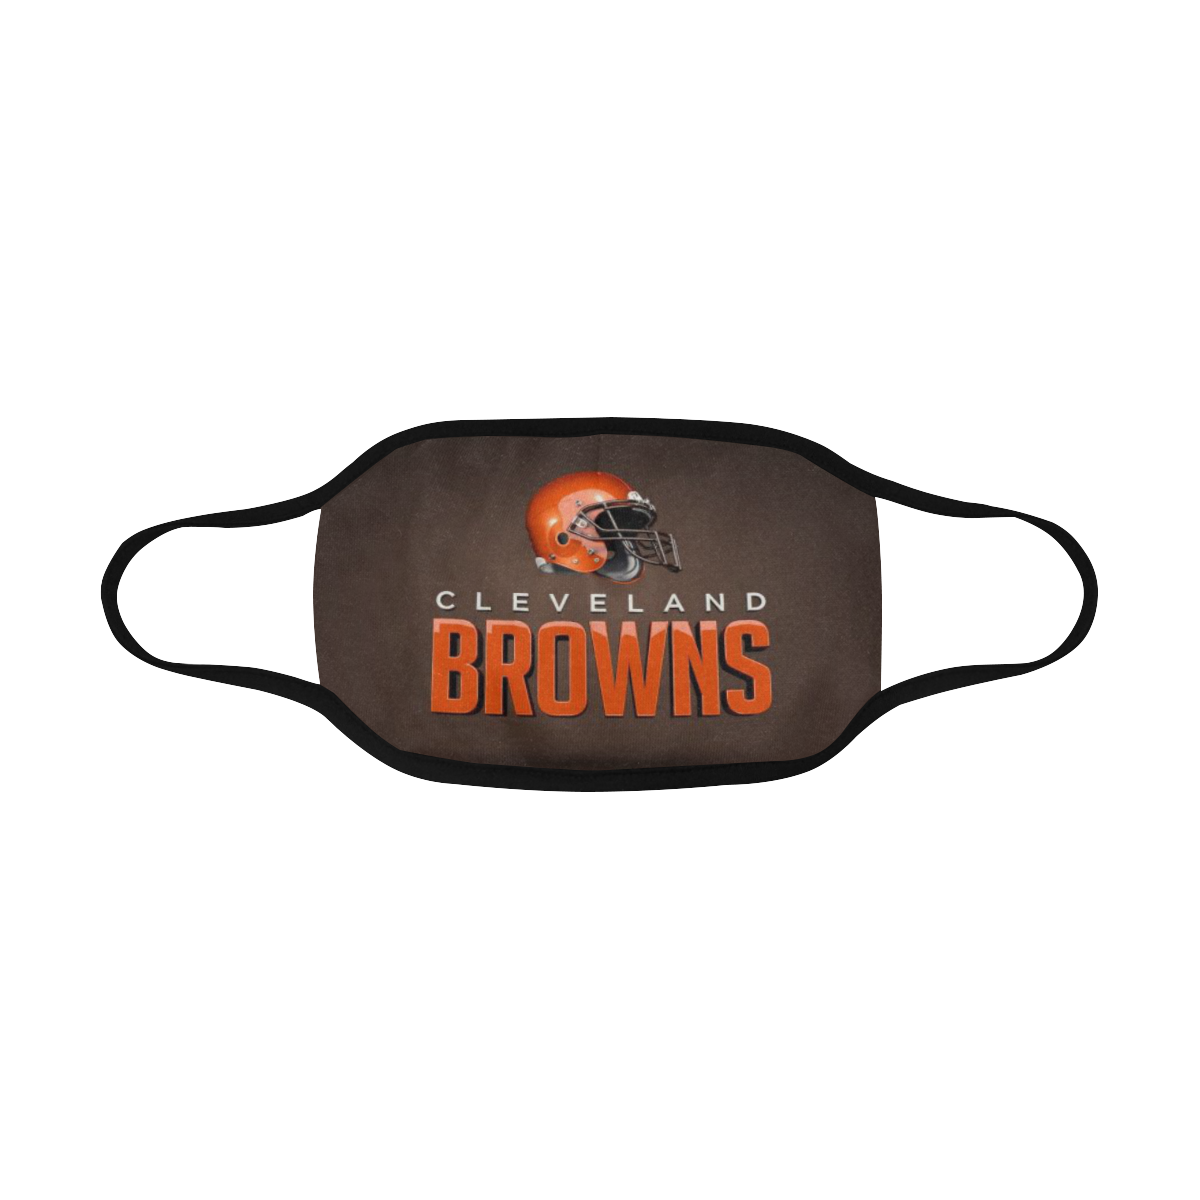 Cleveland Browns Face Mask - Adults Mask PM2.5